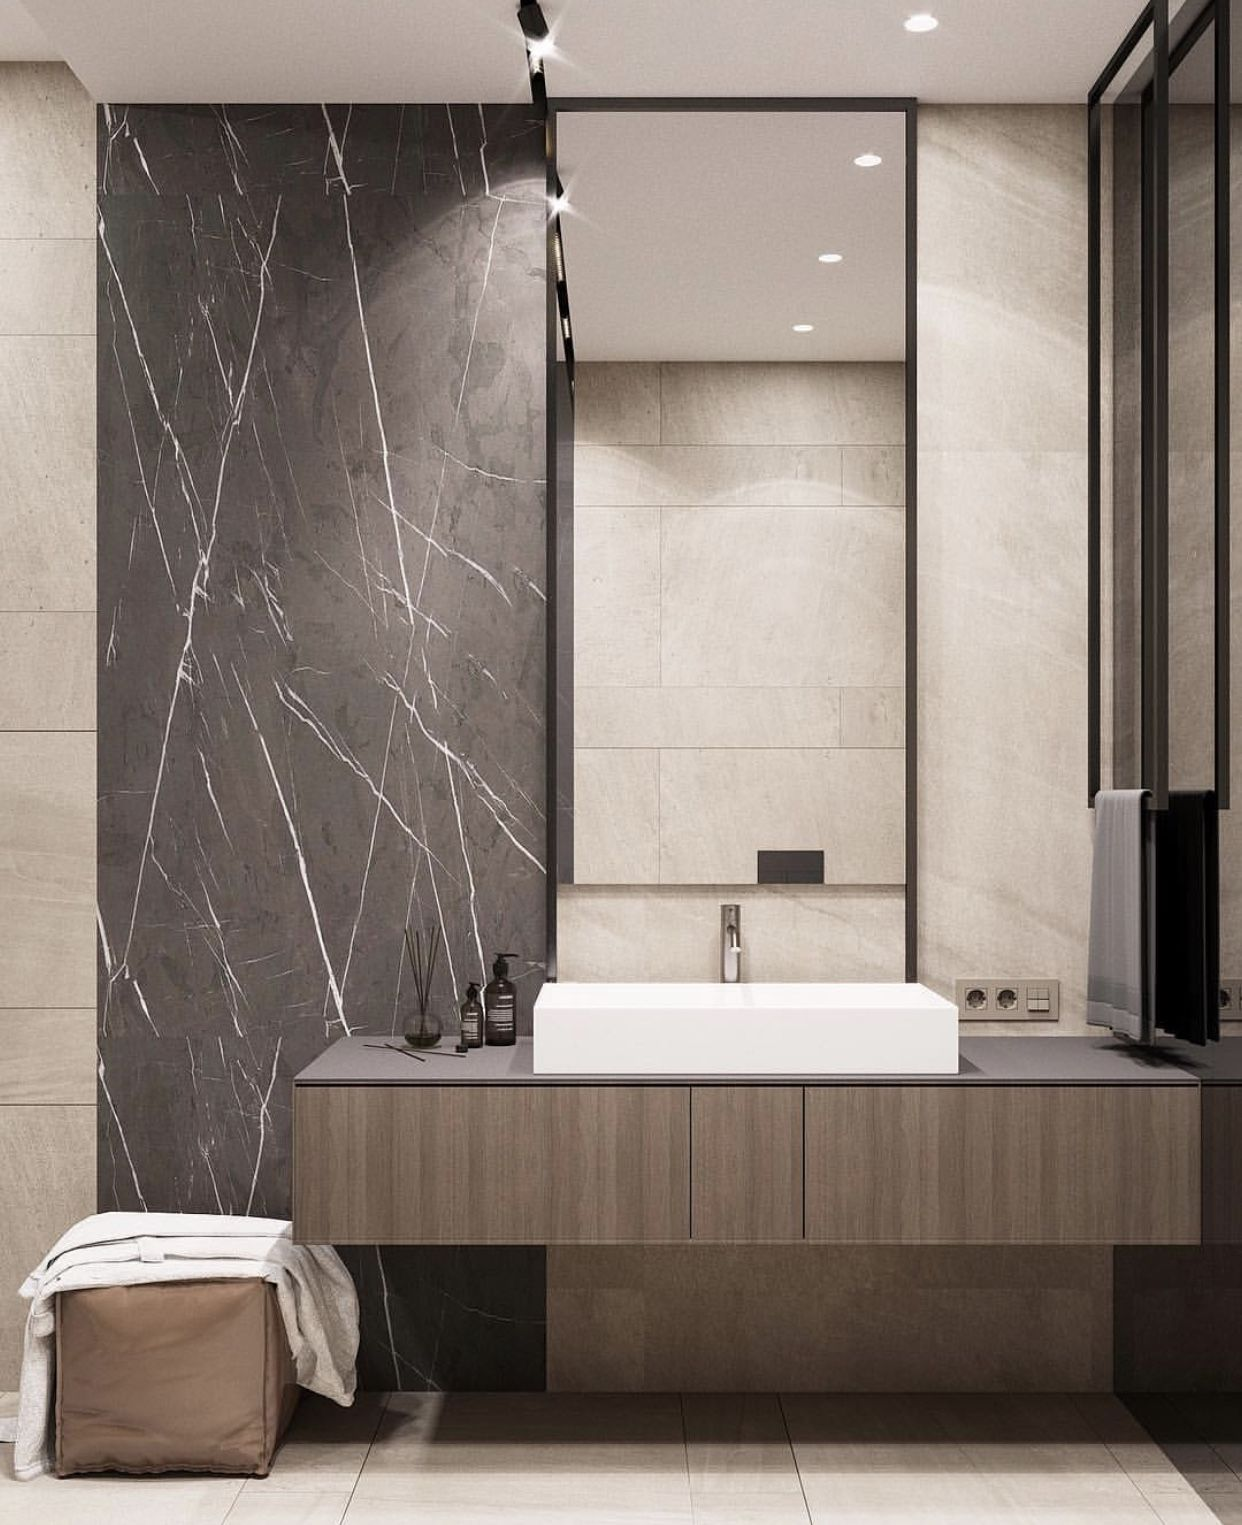 Pin By Ching Alice Wong On Home Design Bathroom Design Small